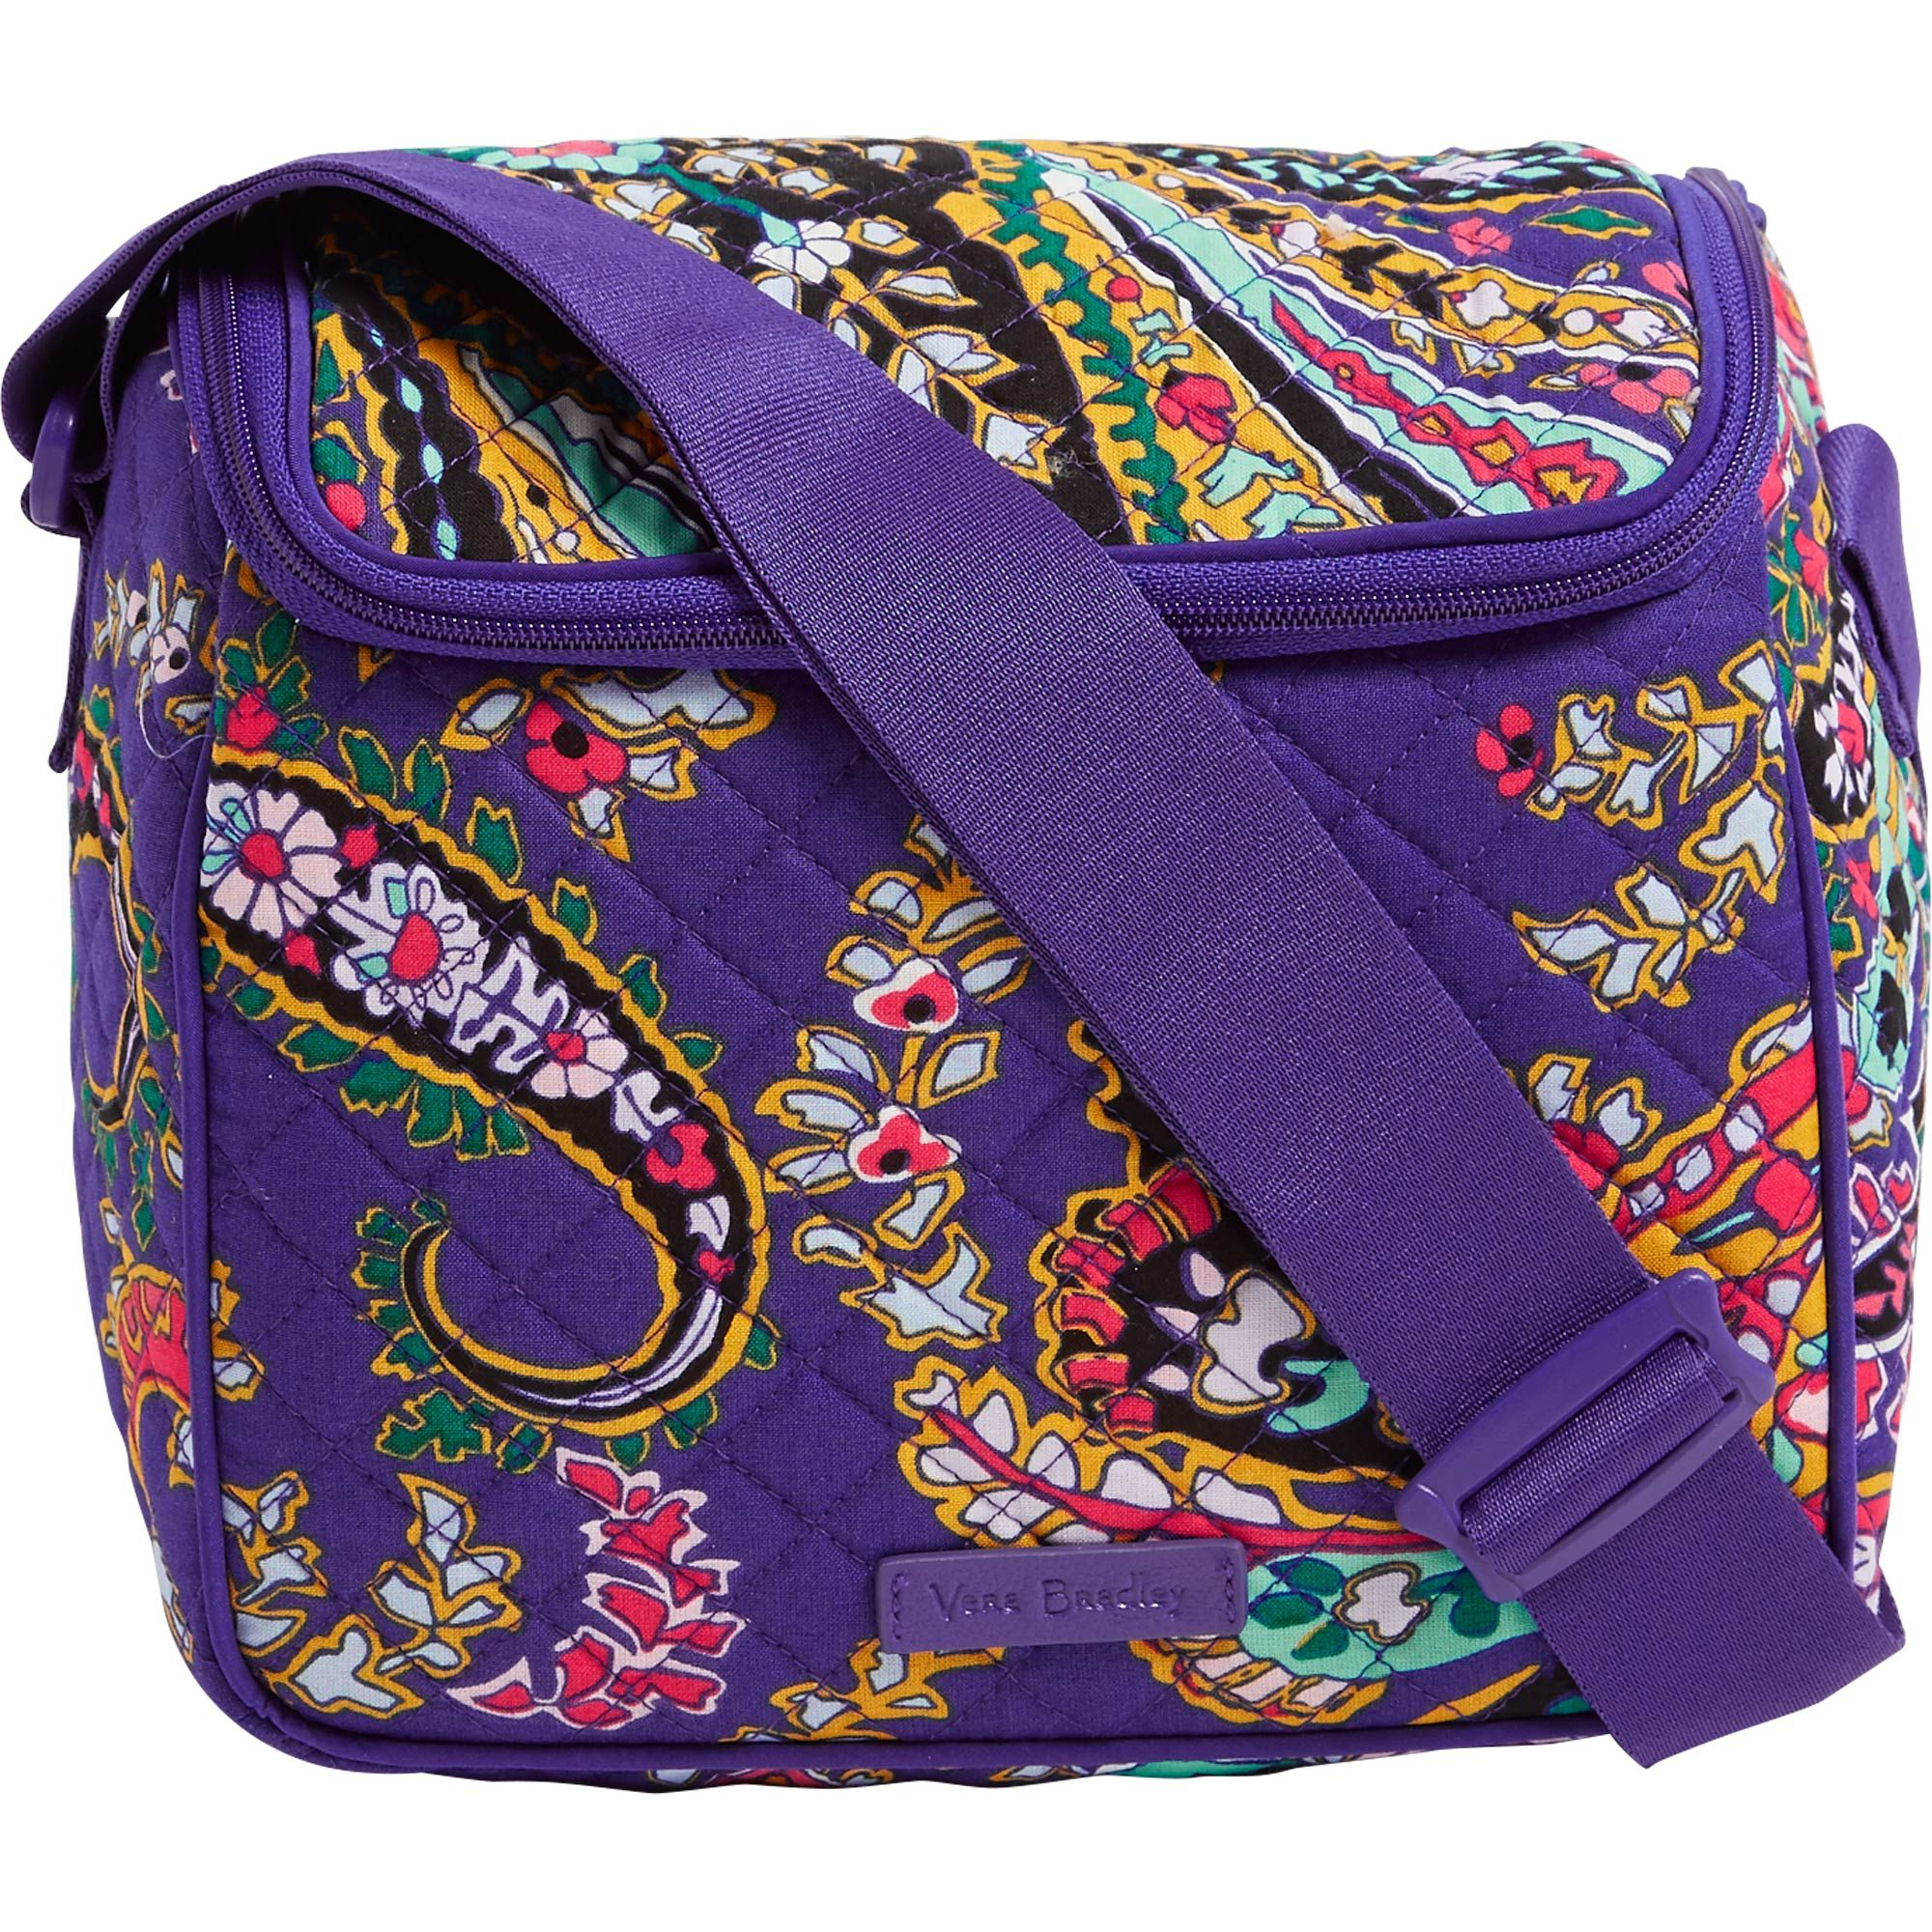 Vera Bradley - Iconic Stay Cooler - Romantic Paisley. Keep everything cool  when you head to the beach 6f361c3212122